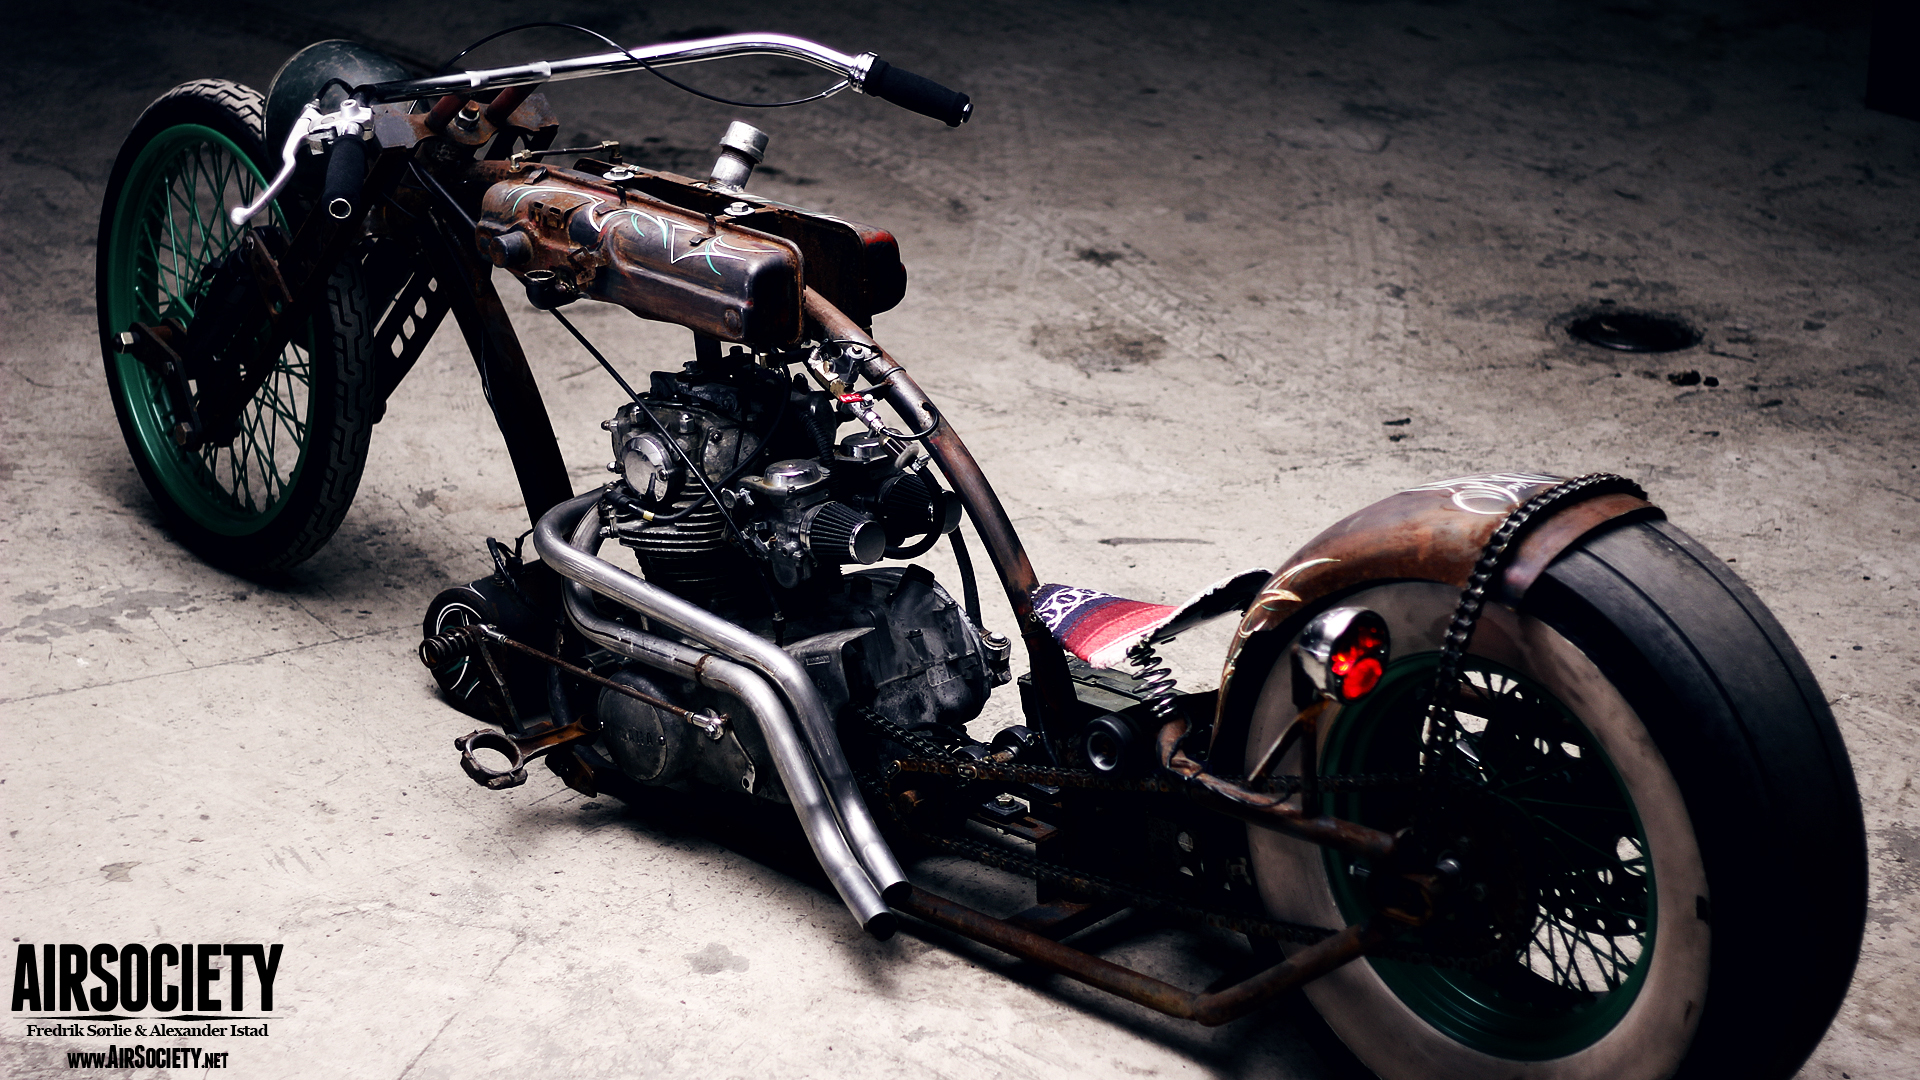 download Rat Bike HD Wallpapers AirSociety [1920x1080] for 1920x1080